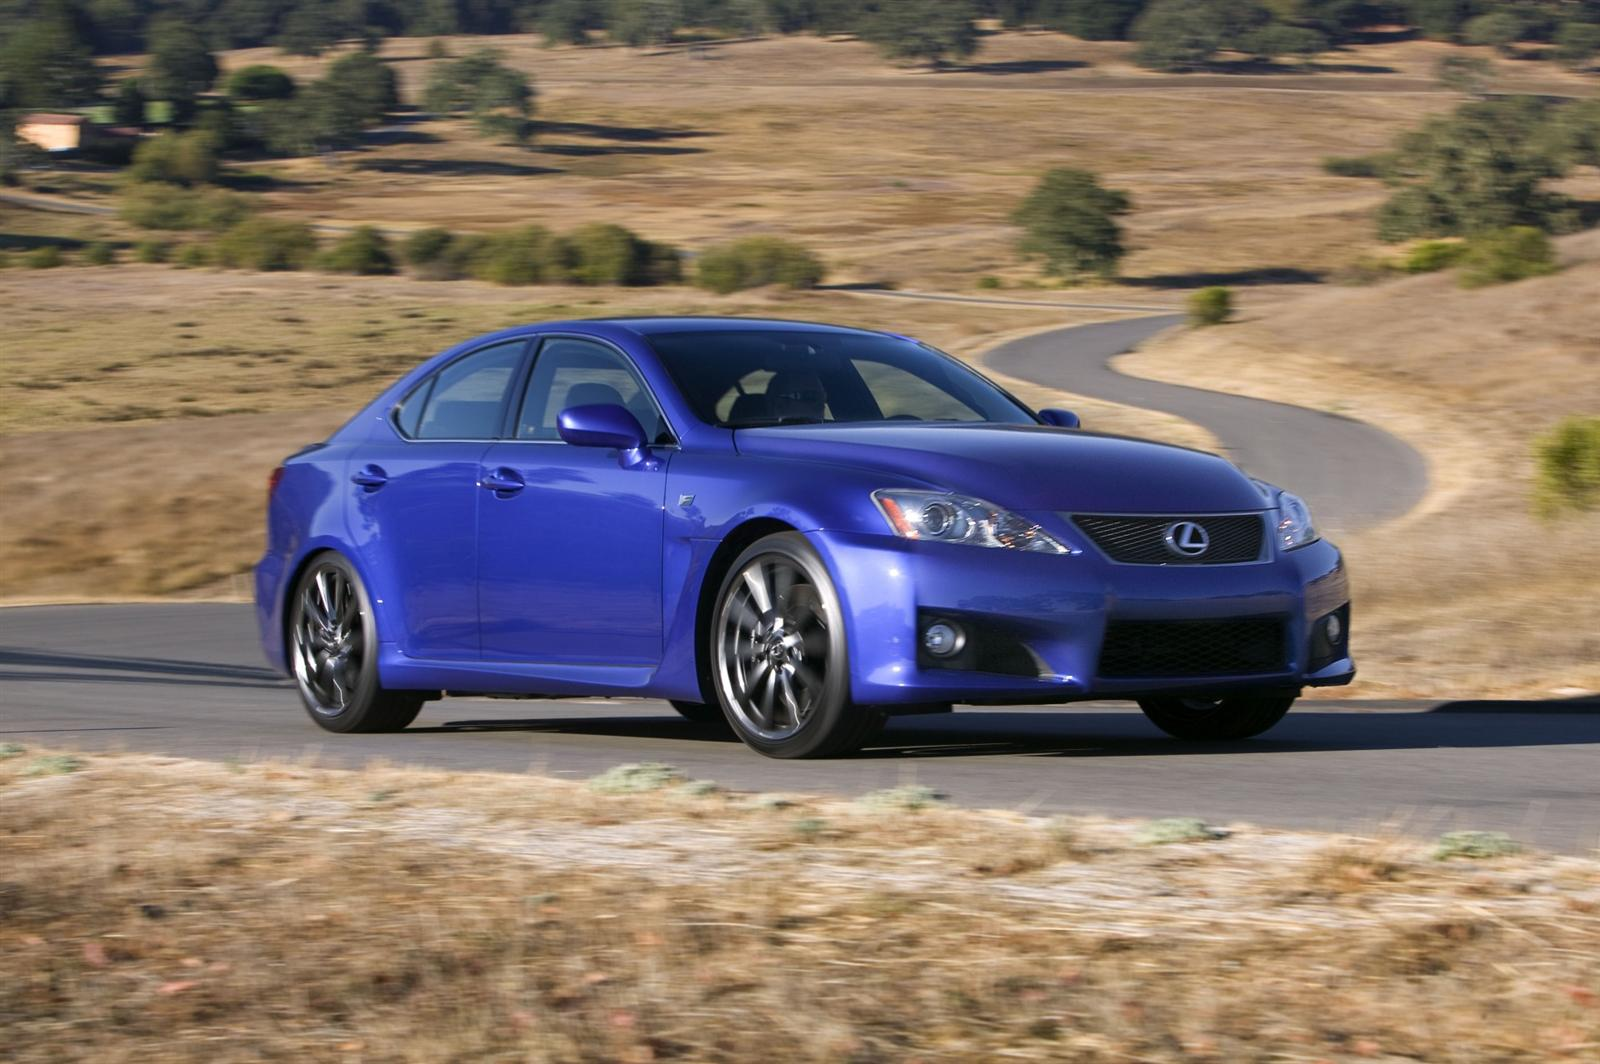 2010 Lexus Is F #3